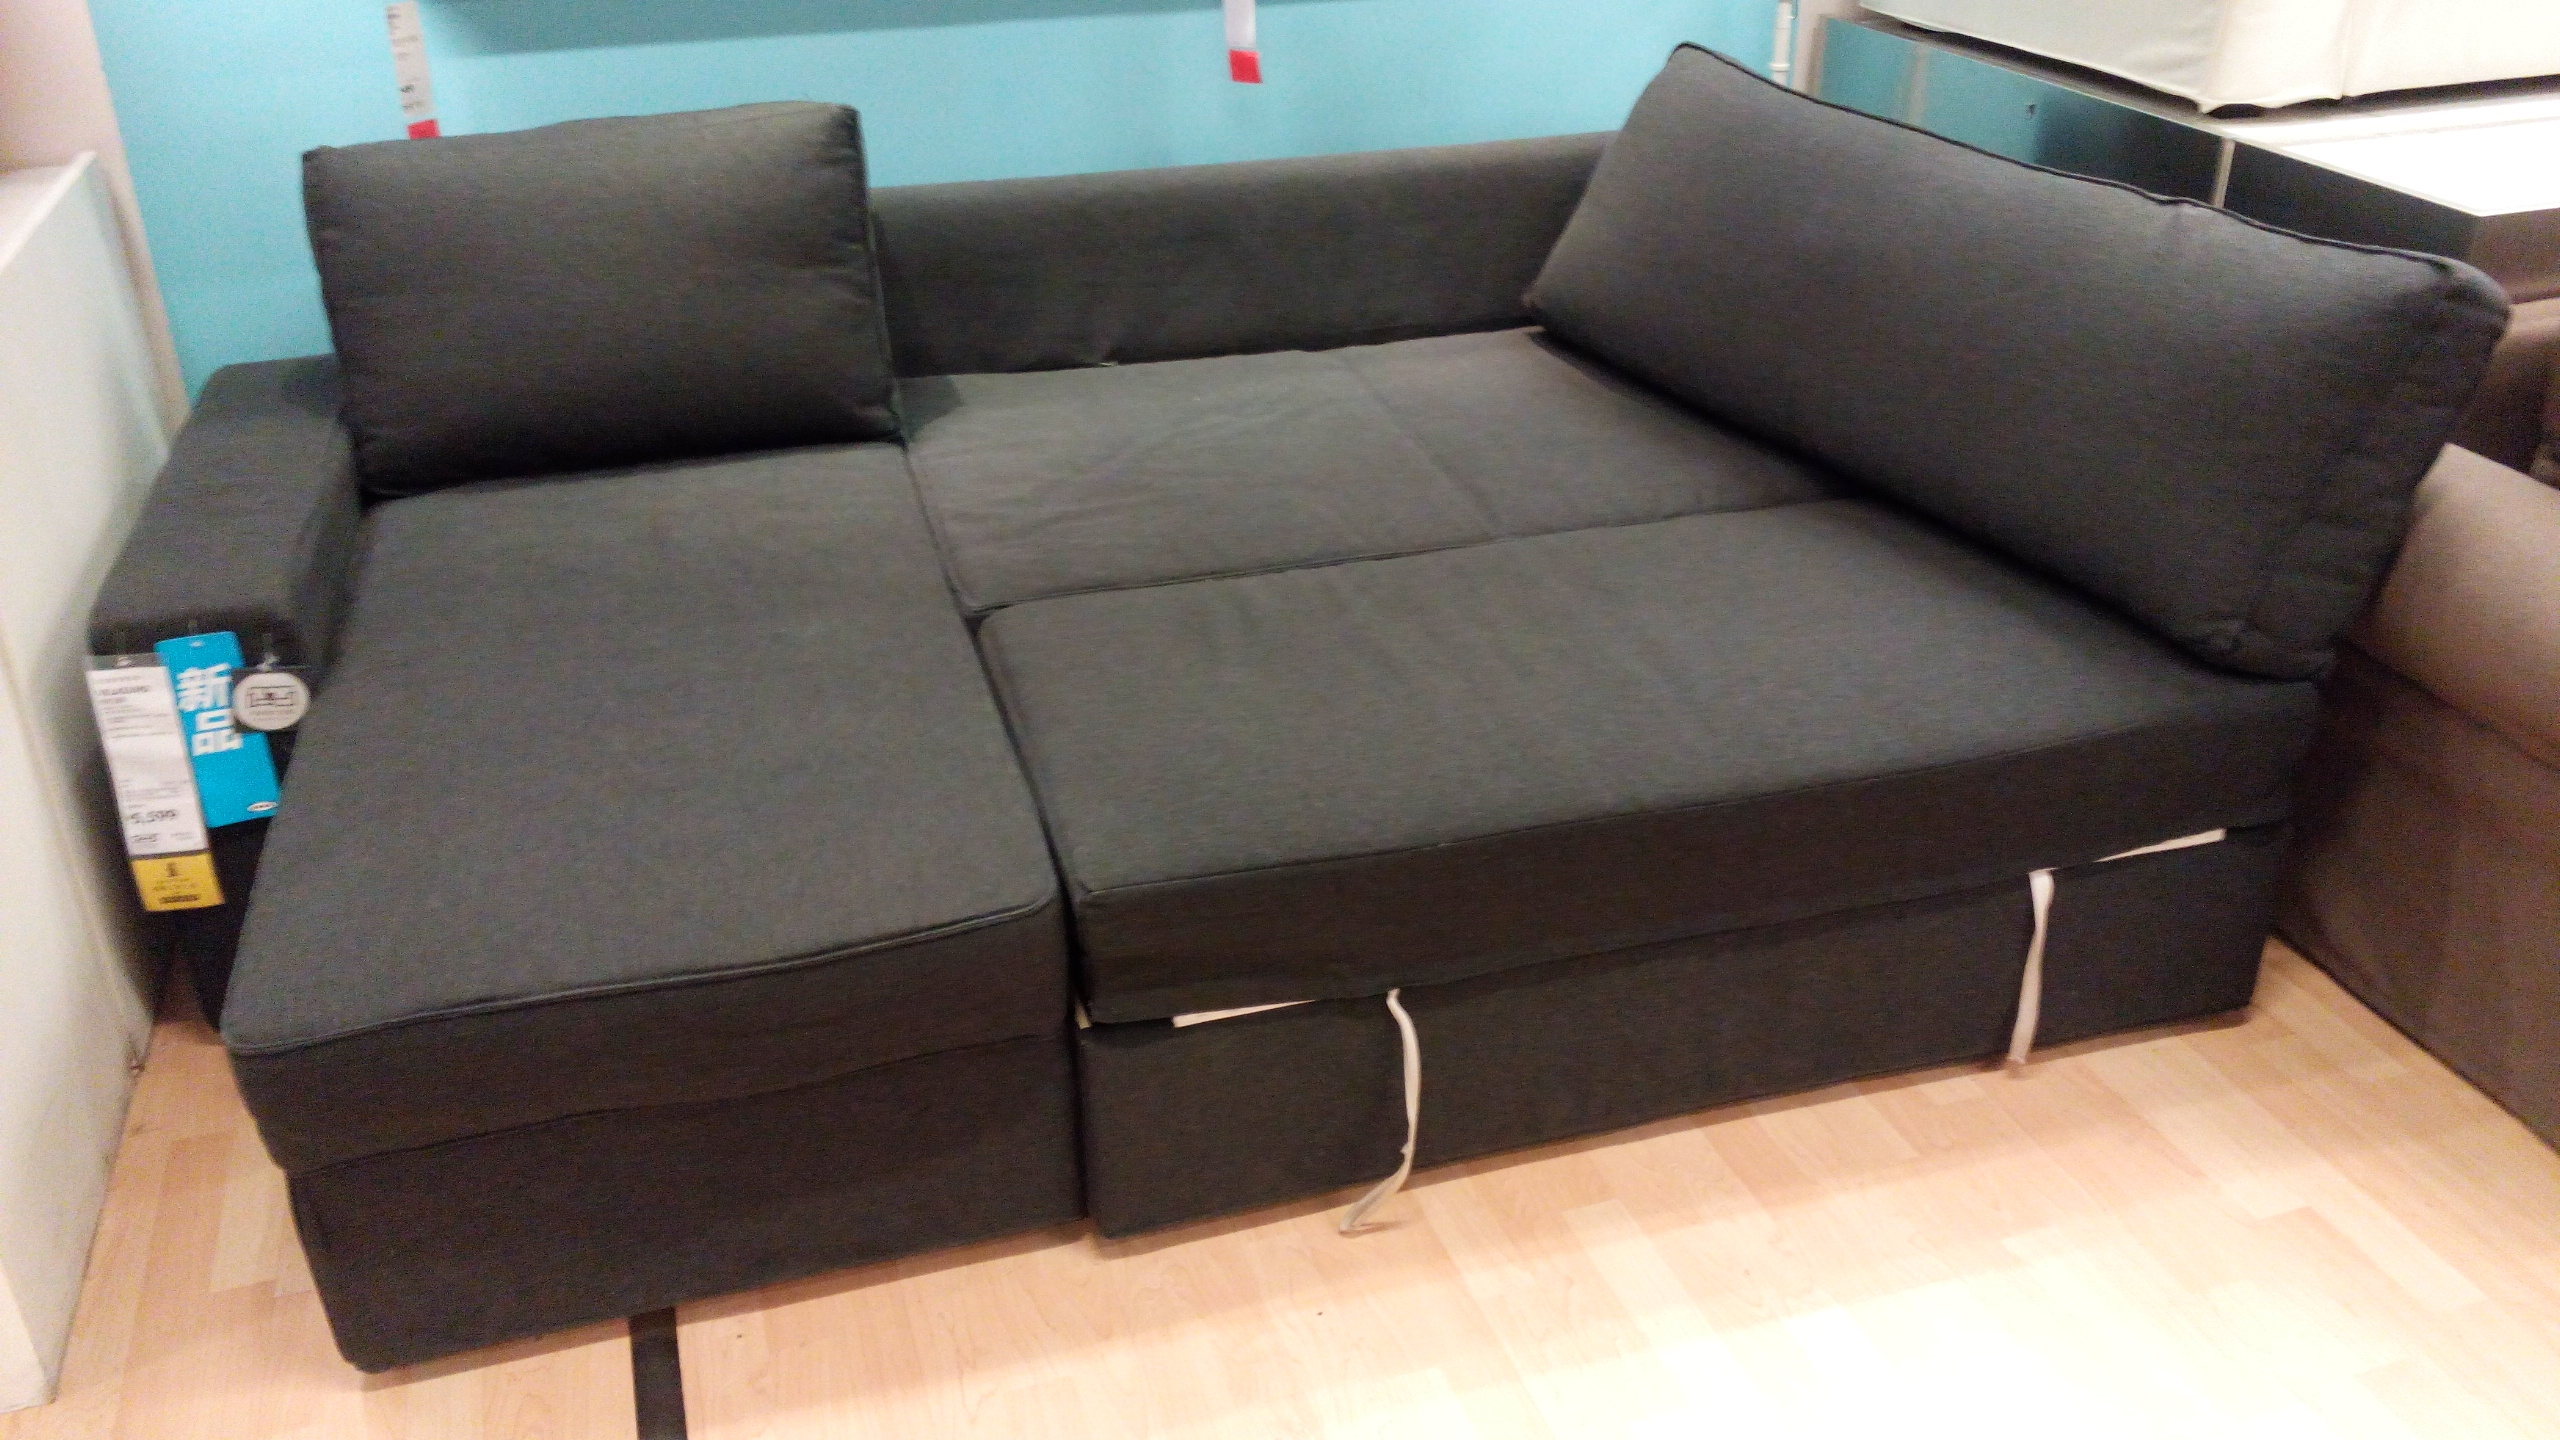 Furniture Luxury Sofa Bed Ikea For Home Furniture Ideas Nysben Intended For Corner Sofa Bed With Storage Ikea (#7 of 12)